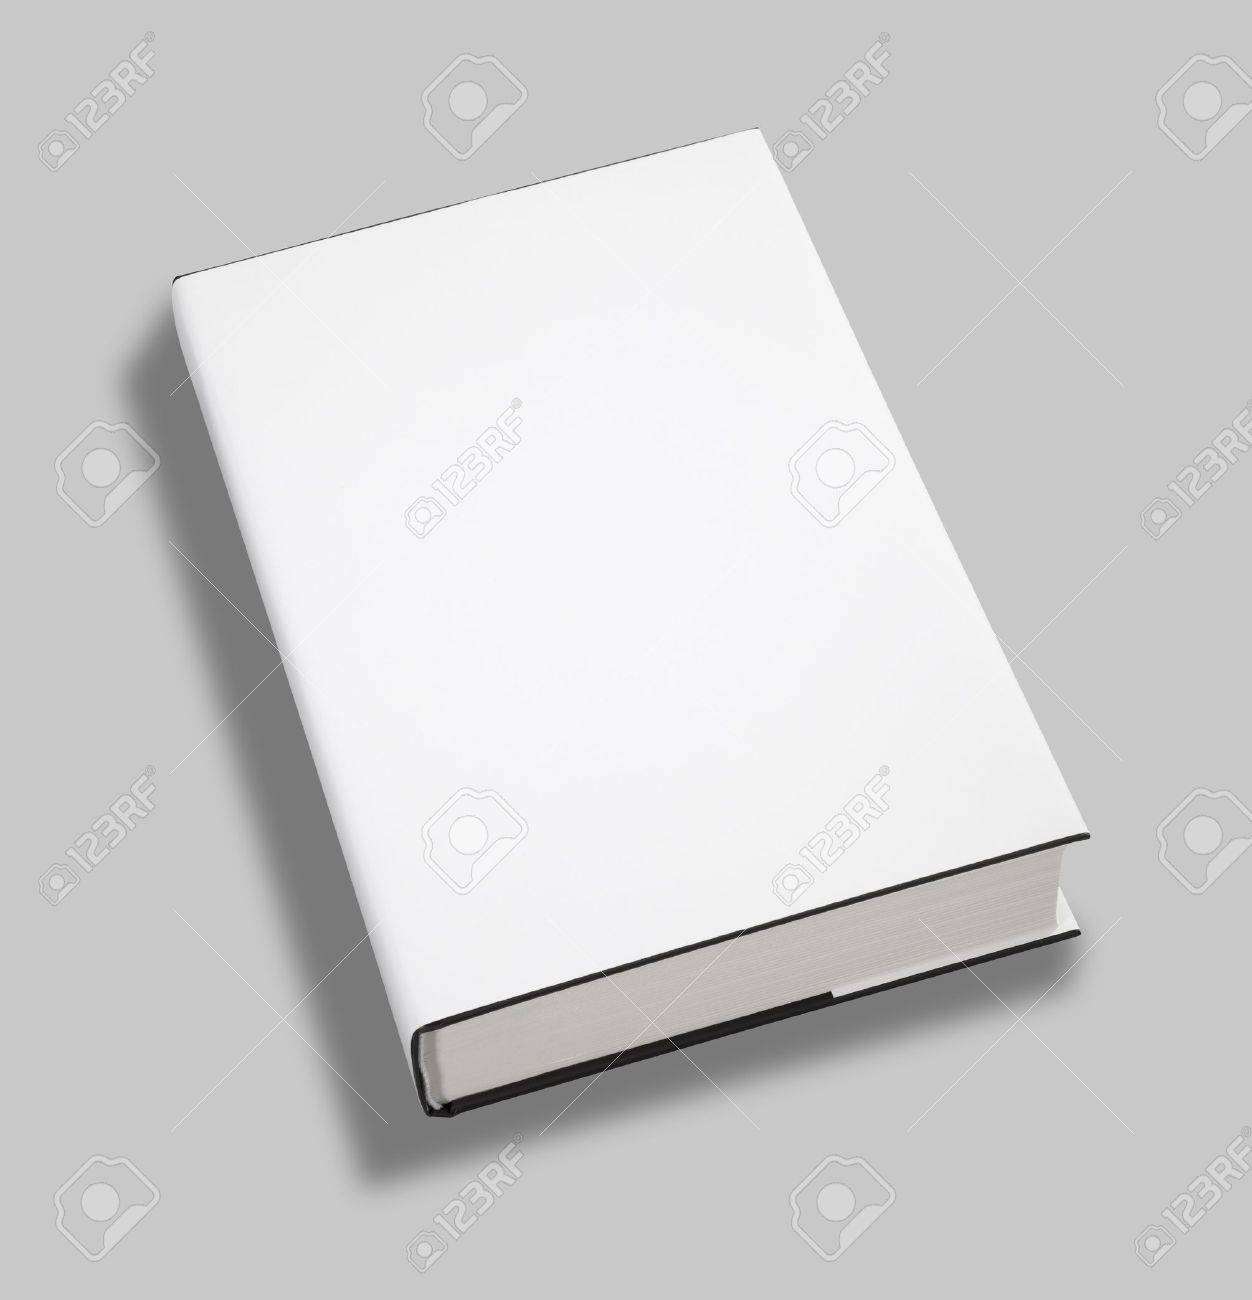 Blank book white cover Stock Photo - 8571238